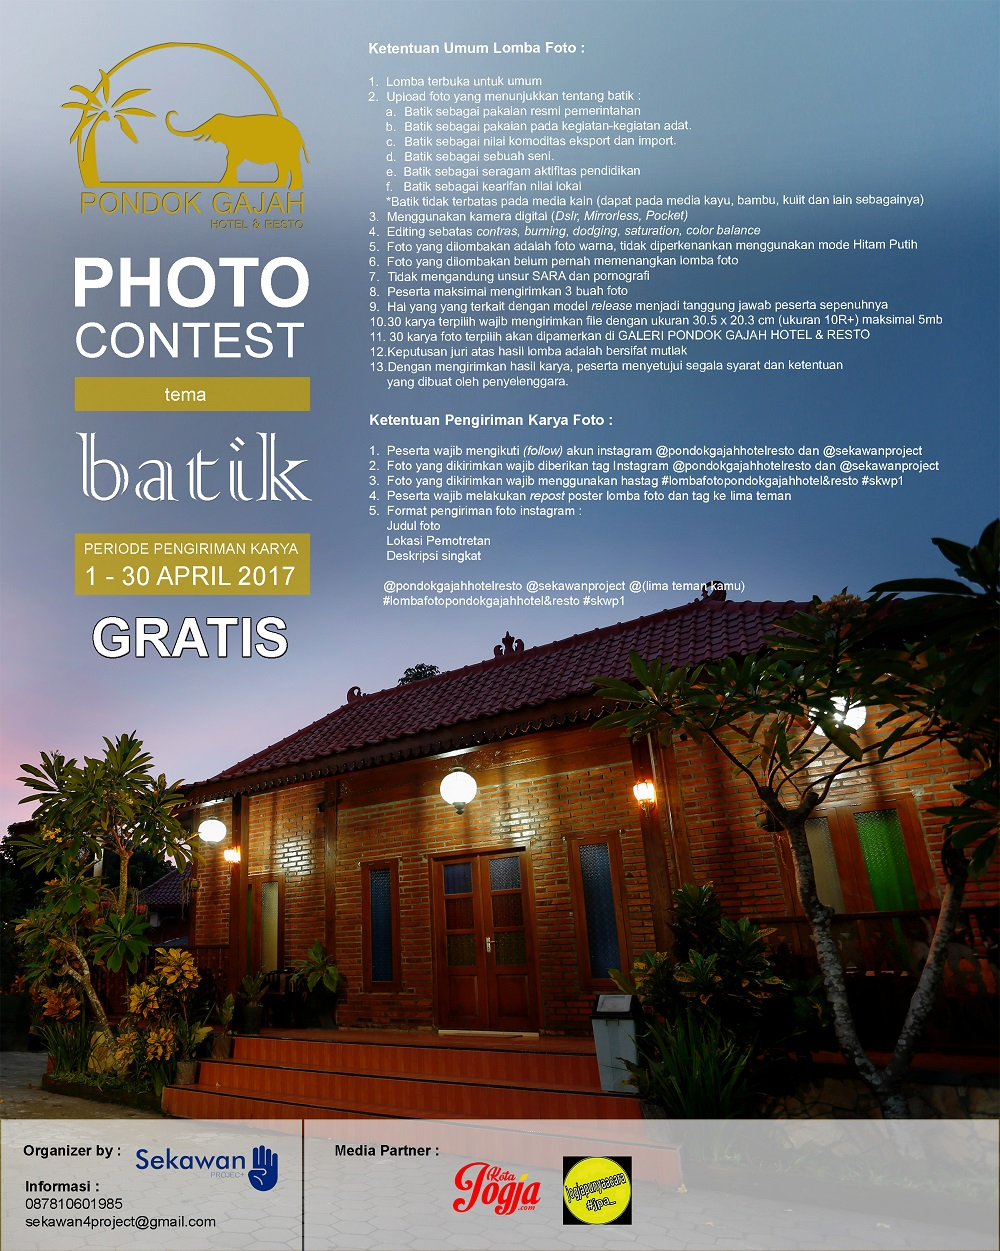 Pondok Gajah Hotel & Resto Photo Contest, Periode 1 - 30 April 2017